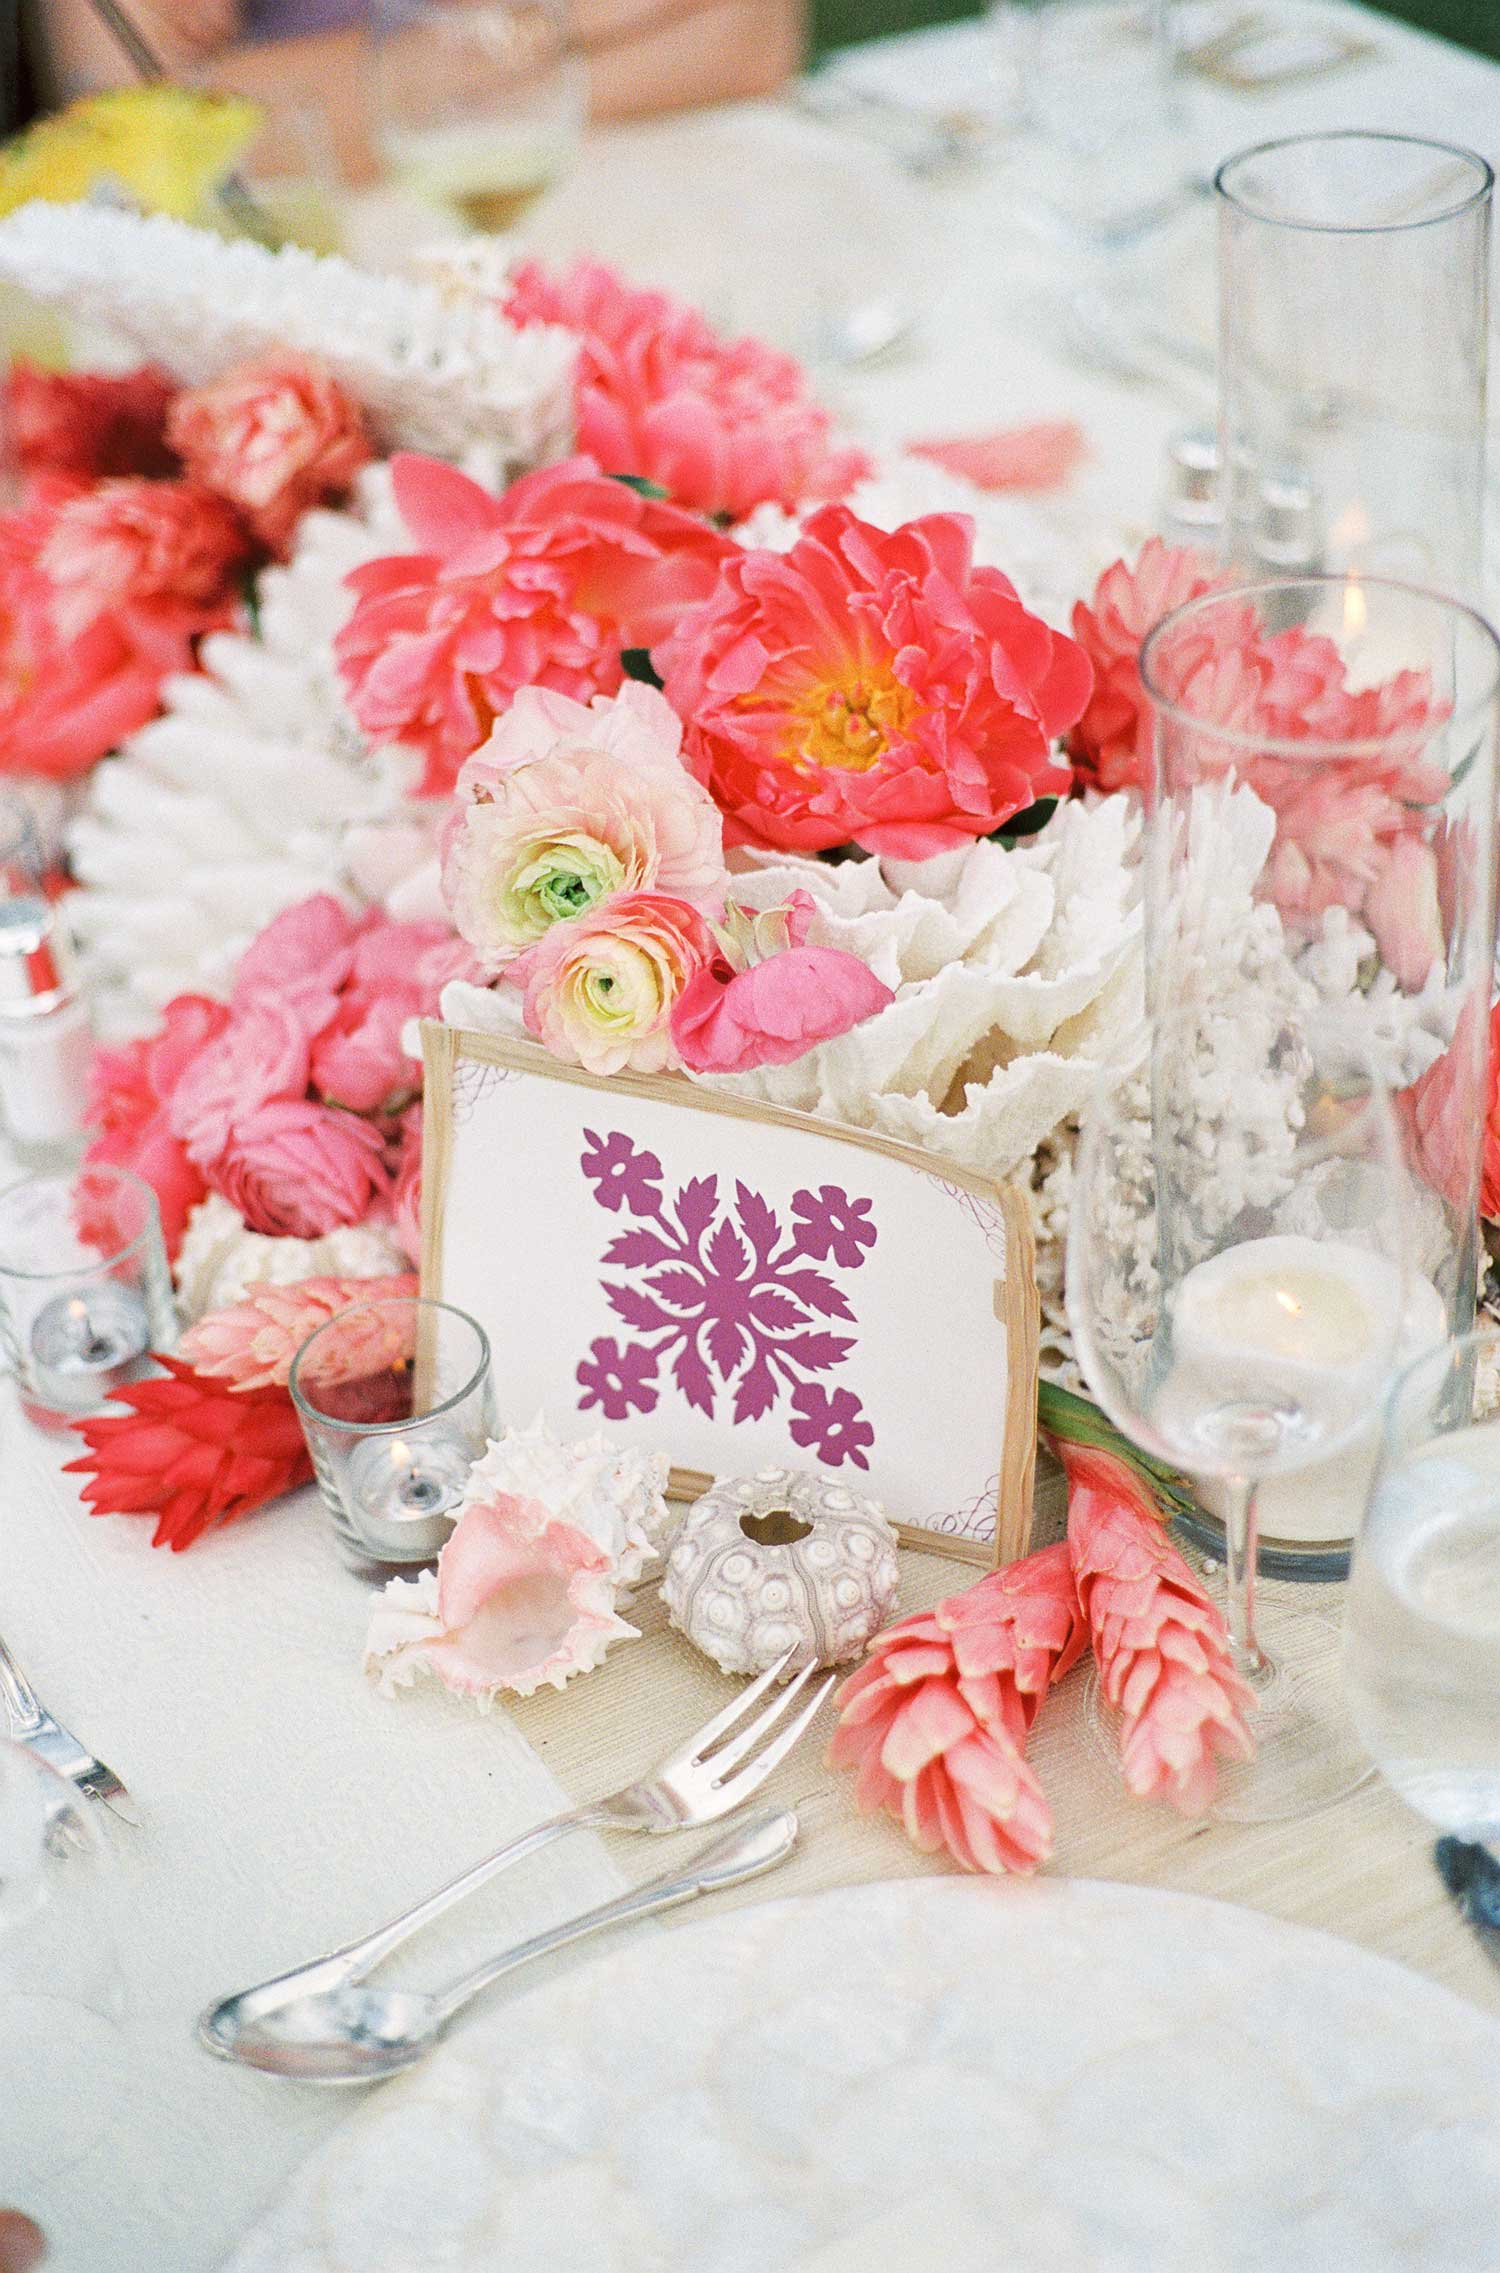 2019 Pantone Color of the Year Living Coral wedding ideas reception centerpiece decoration flowers